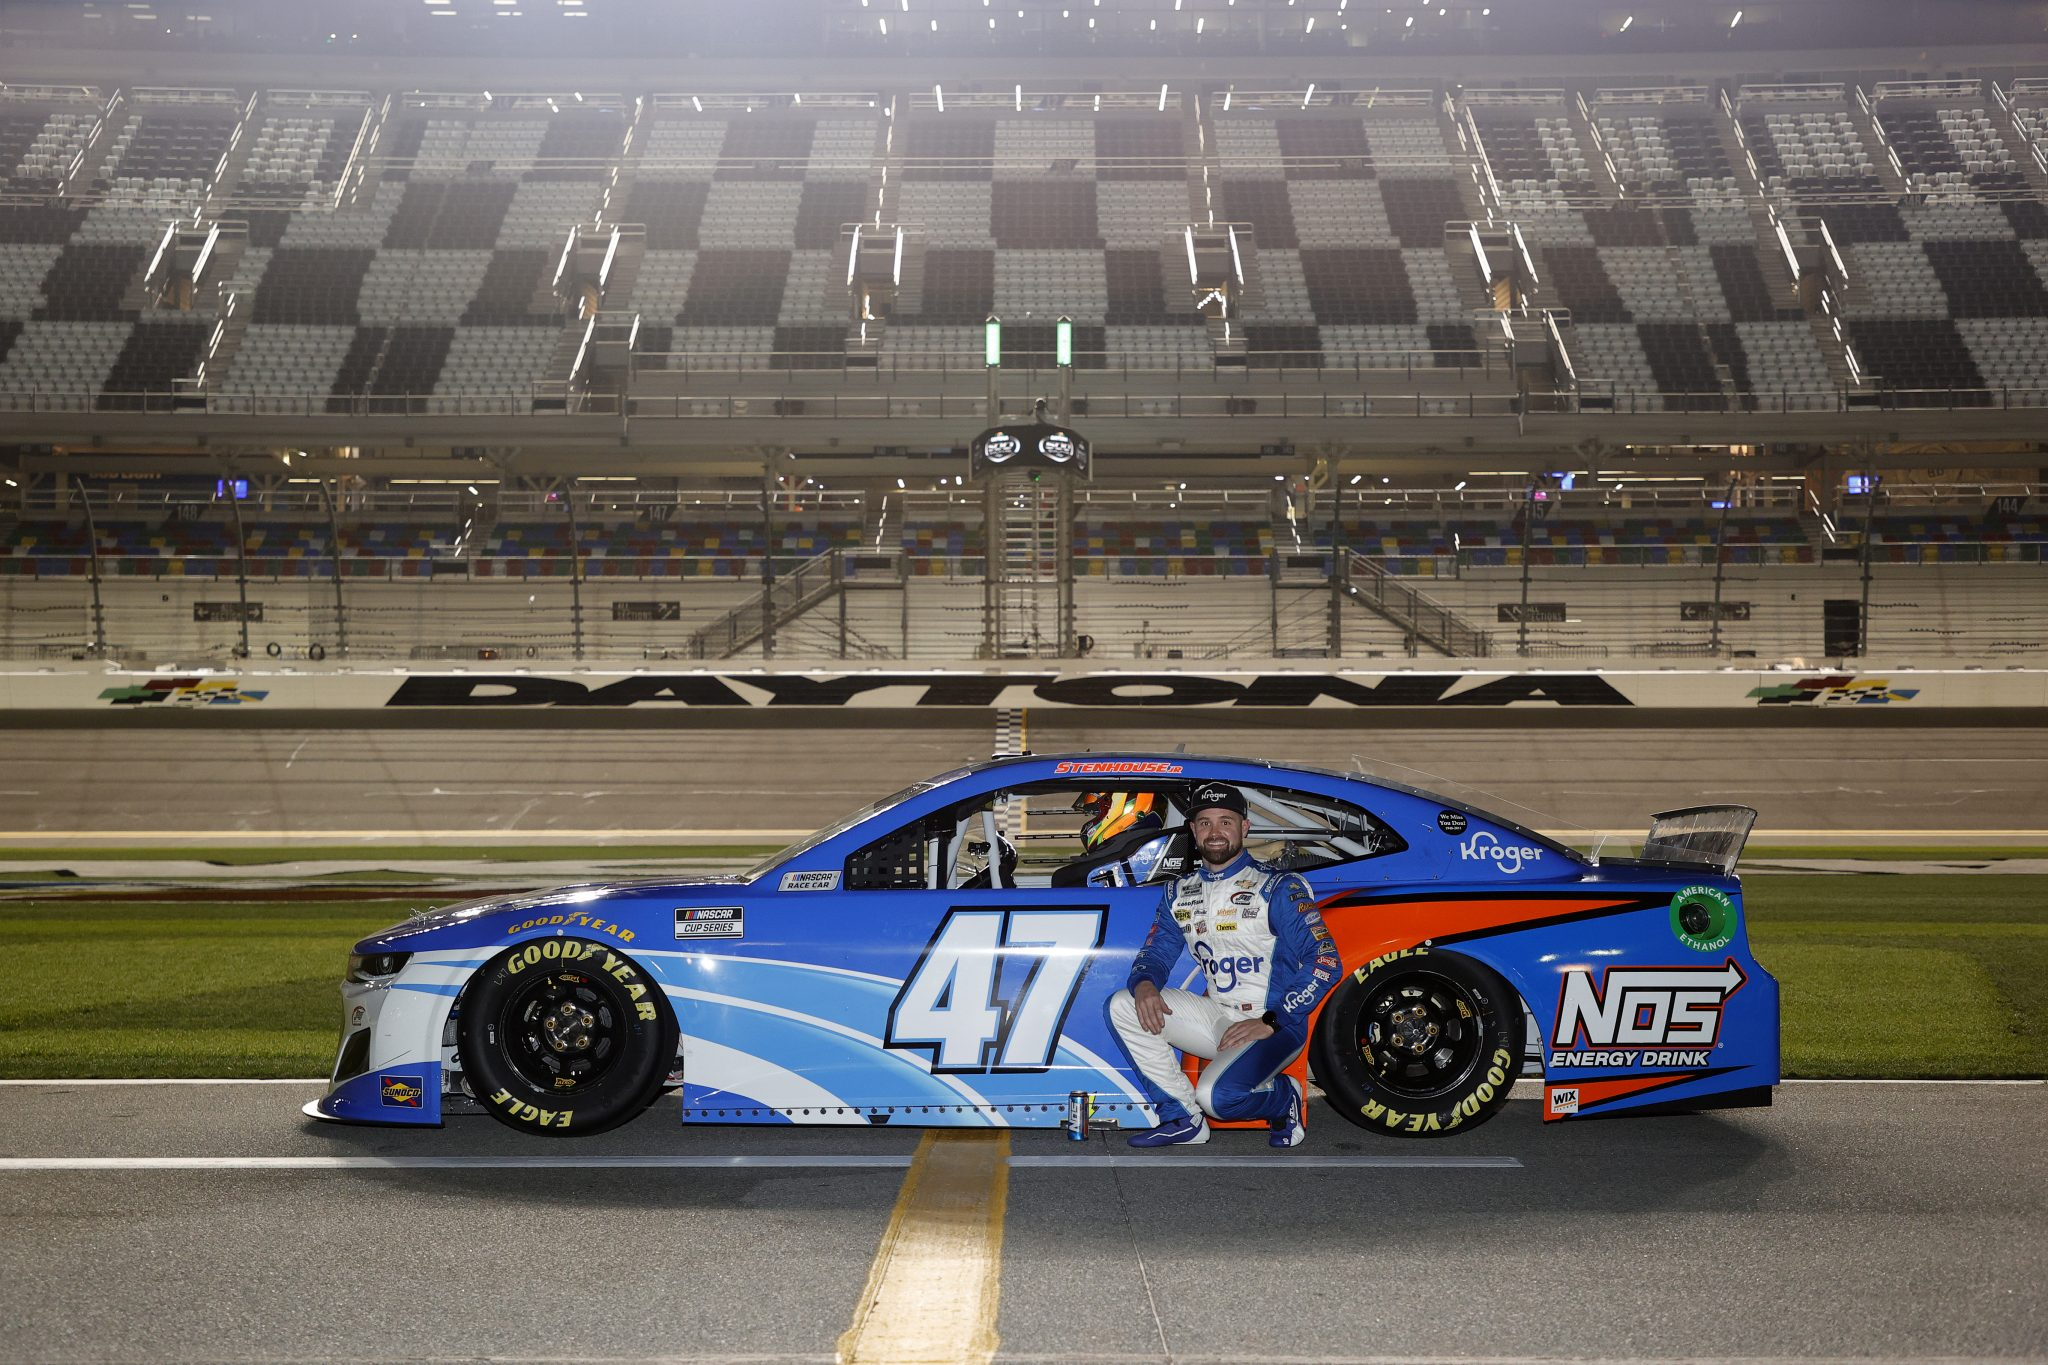 DAYTONA BEACH, FLORIDA - FEBRUARY 10: Ricky Stenhouse Jr., driver of the #47 Kroger/NOS Energy Drink Chevrolet, poses for photos during qualifying for the NASCAR Cup Series 63rd Annual Daytona 500 at Daytona International Speedway on February 10, 2021 in Daytona Beach, Florida. (Photo by Jared C. Tilton/Getty Images) | Getty Images